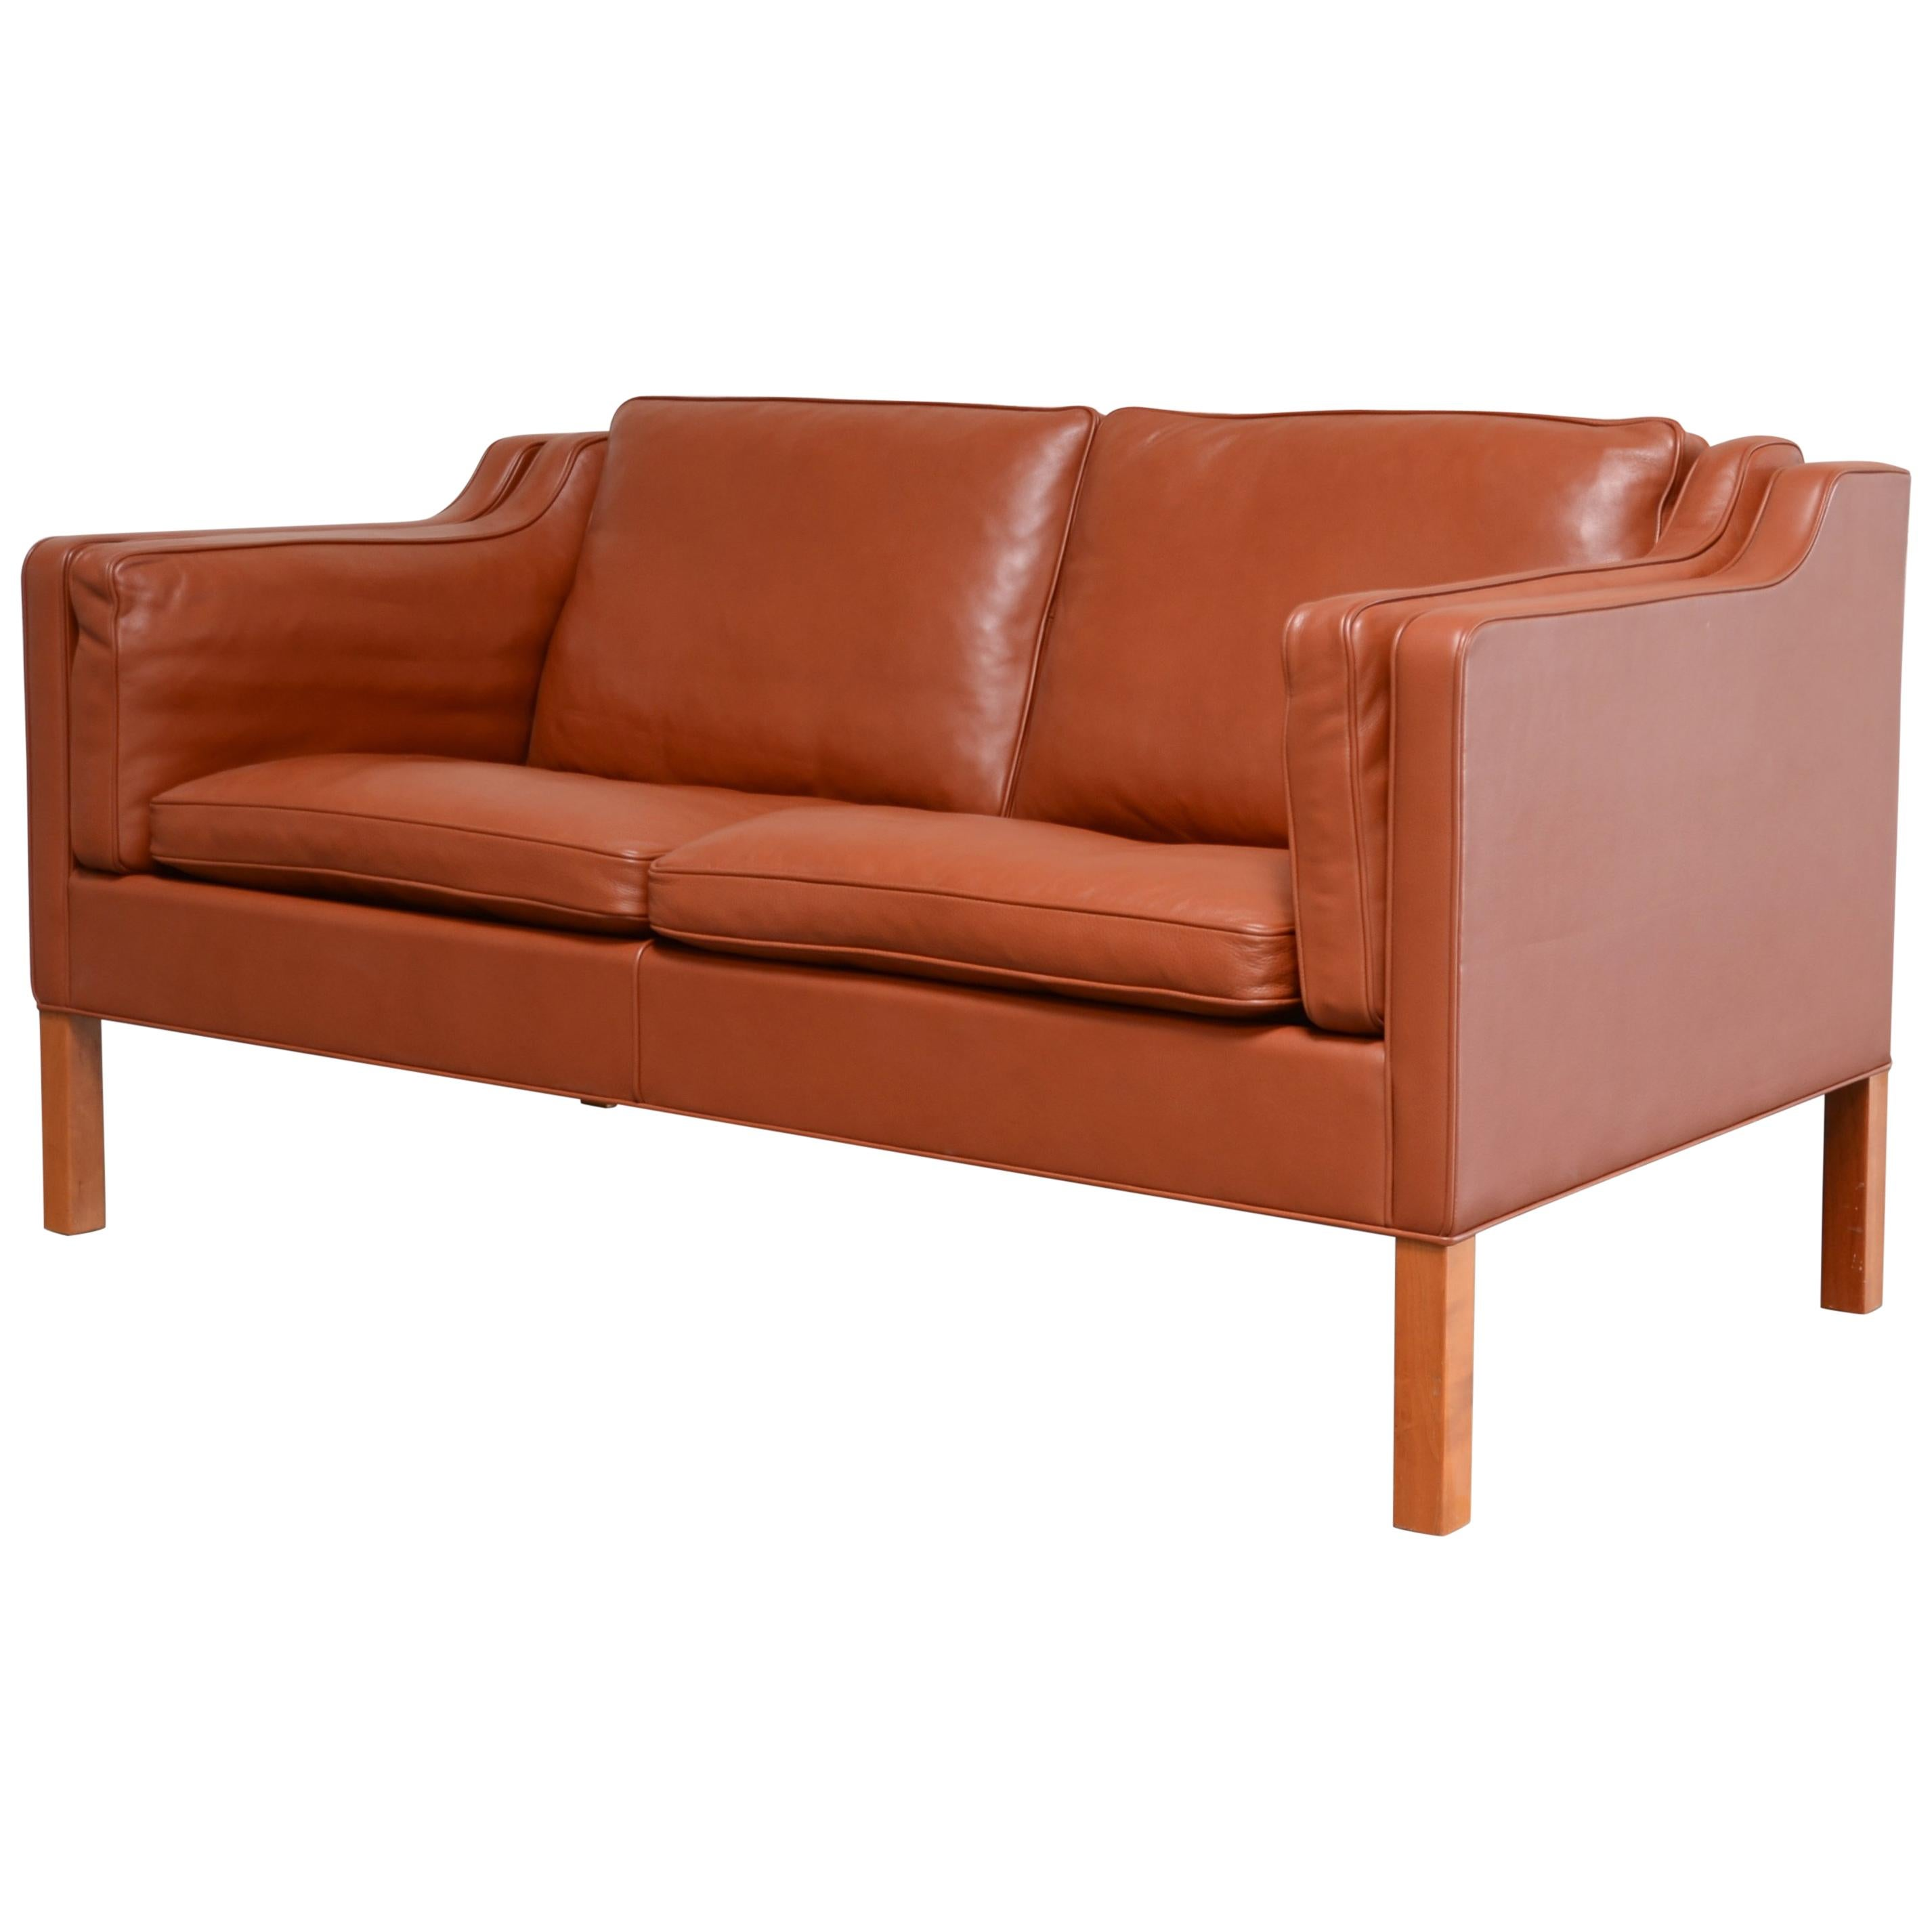 Borge Mogensen Leather Sofa Model 2212 Red Brandy Cognac for Fredericia